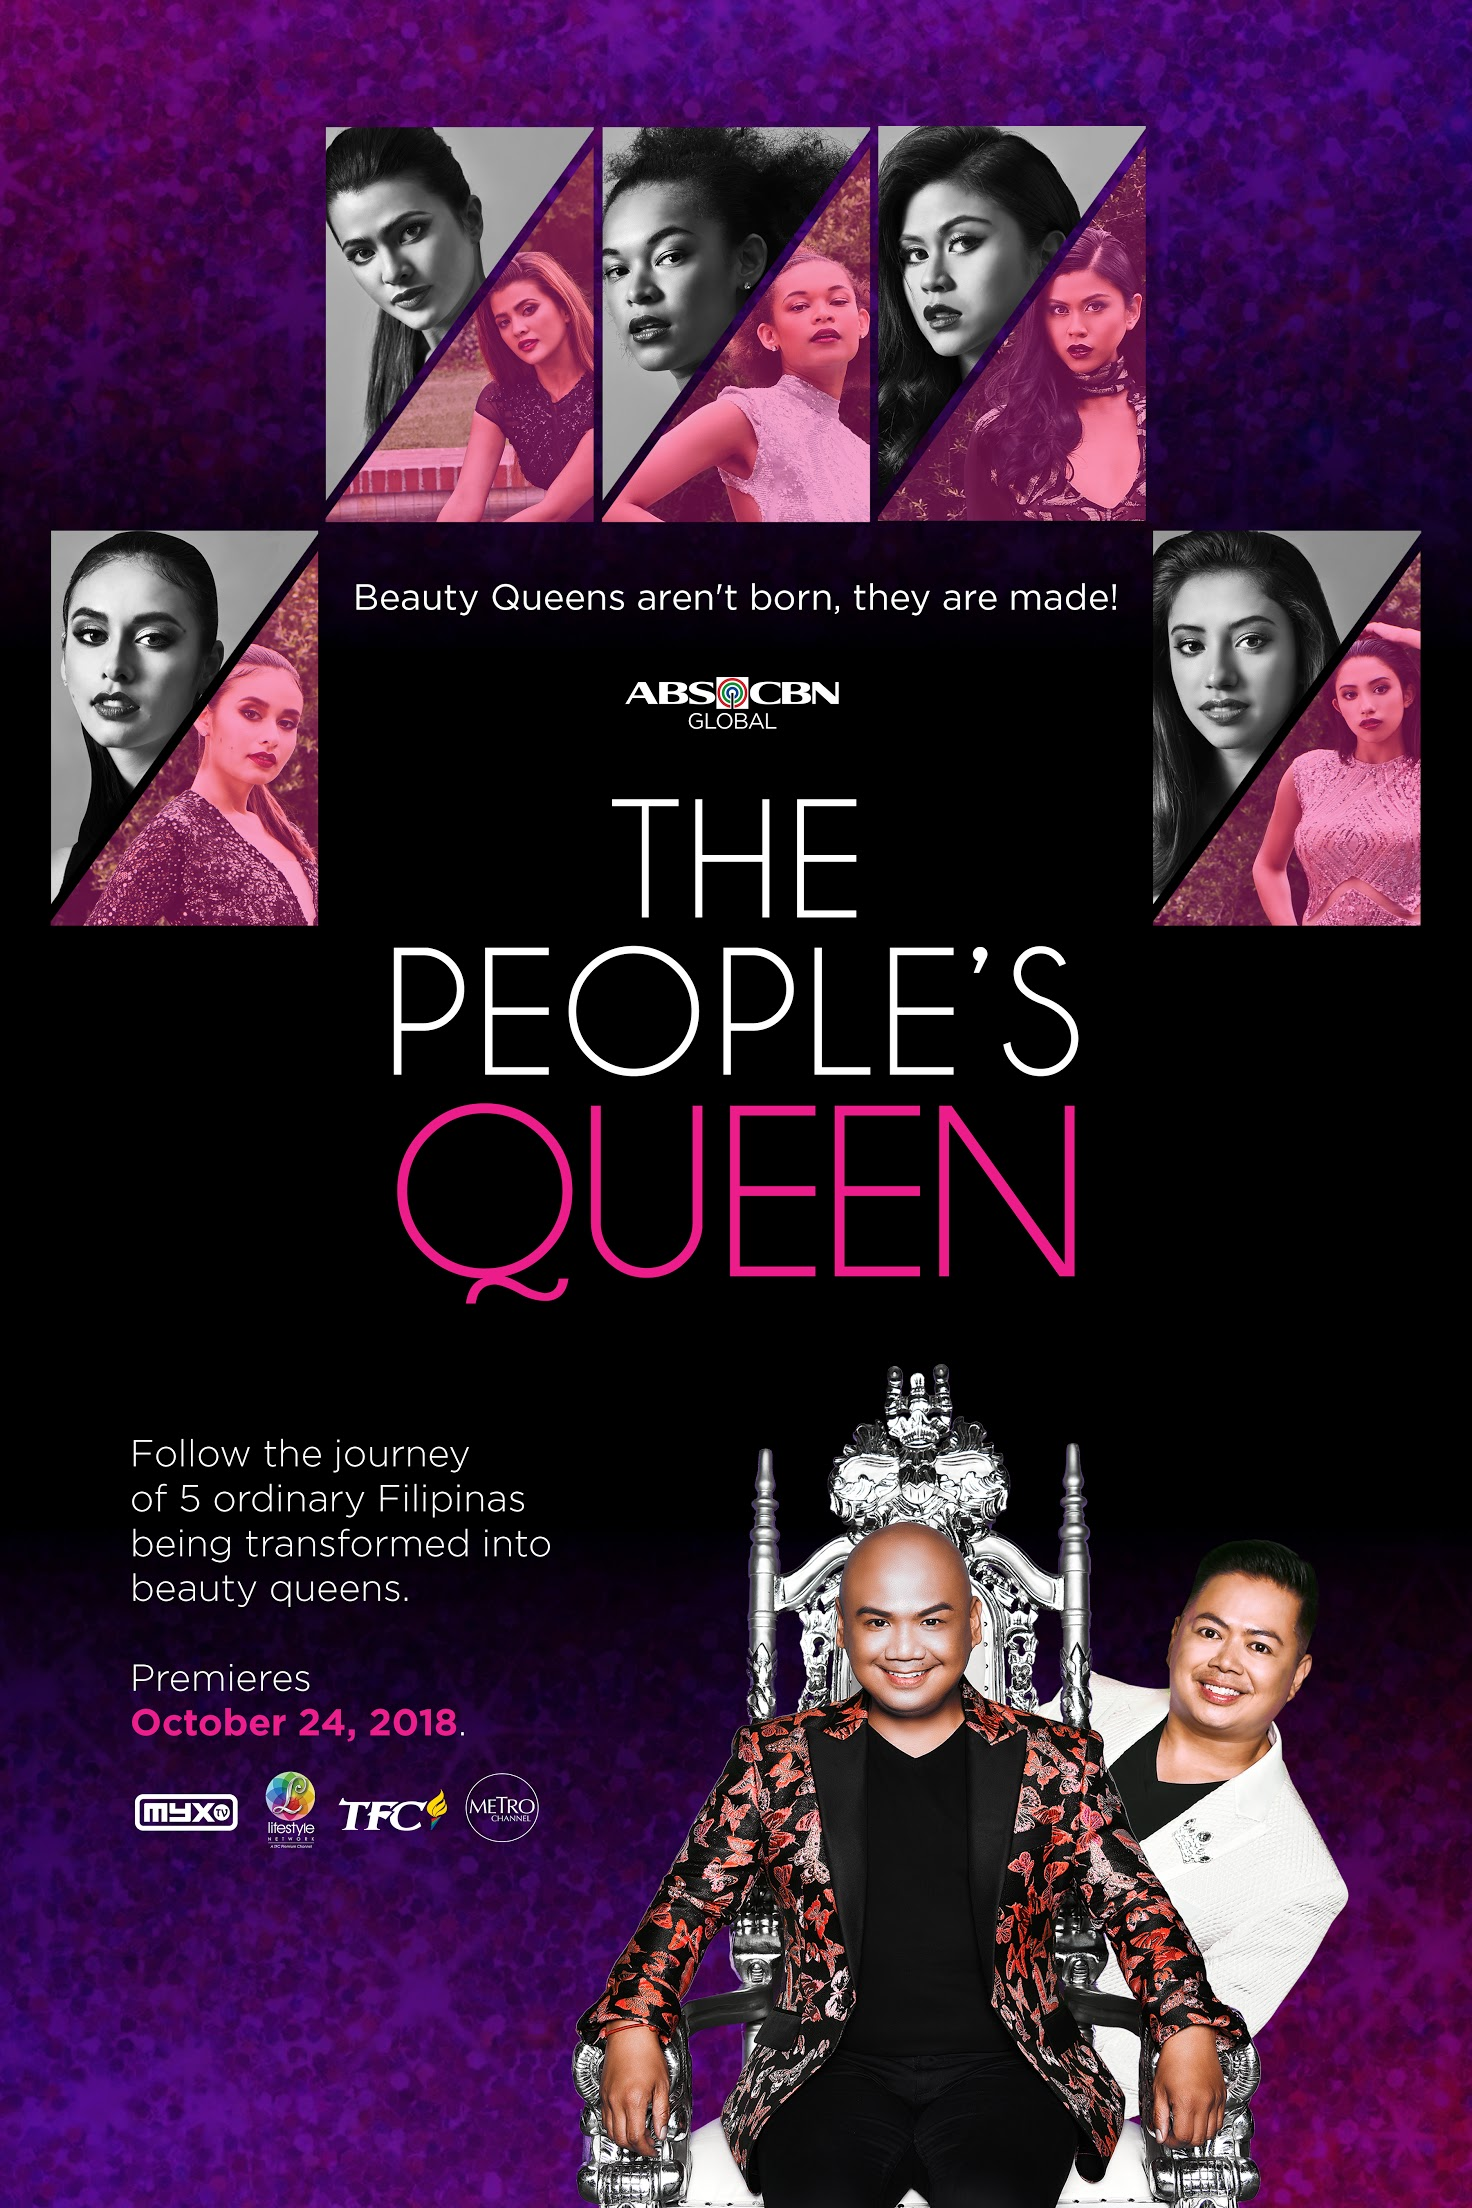 The People's Queen follows Cecilio Asuncion (from Strut, Oxygen TV's reality show about transgender fashion models) and Voltaire Tayag as they coach five of the top Filipino pageant hopefuls in their quests for international titles